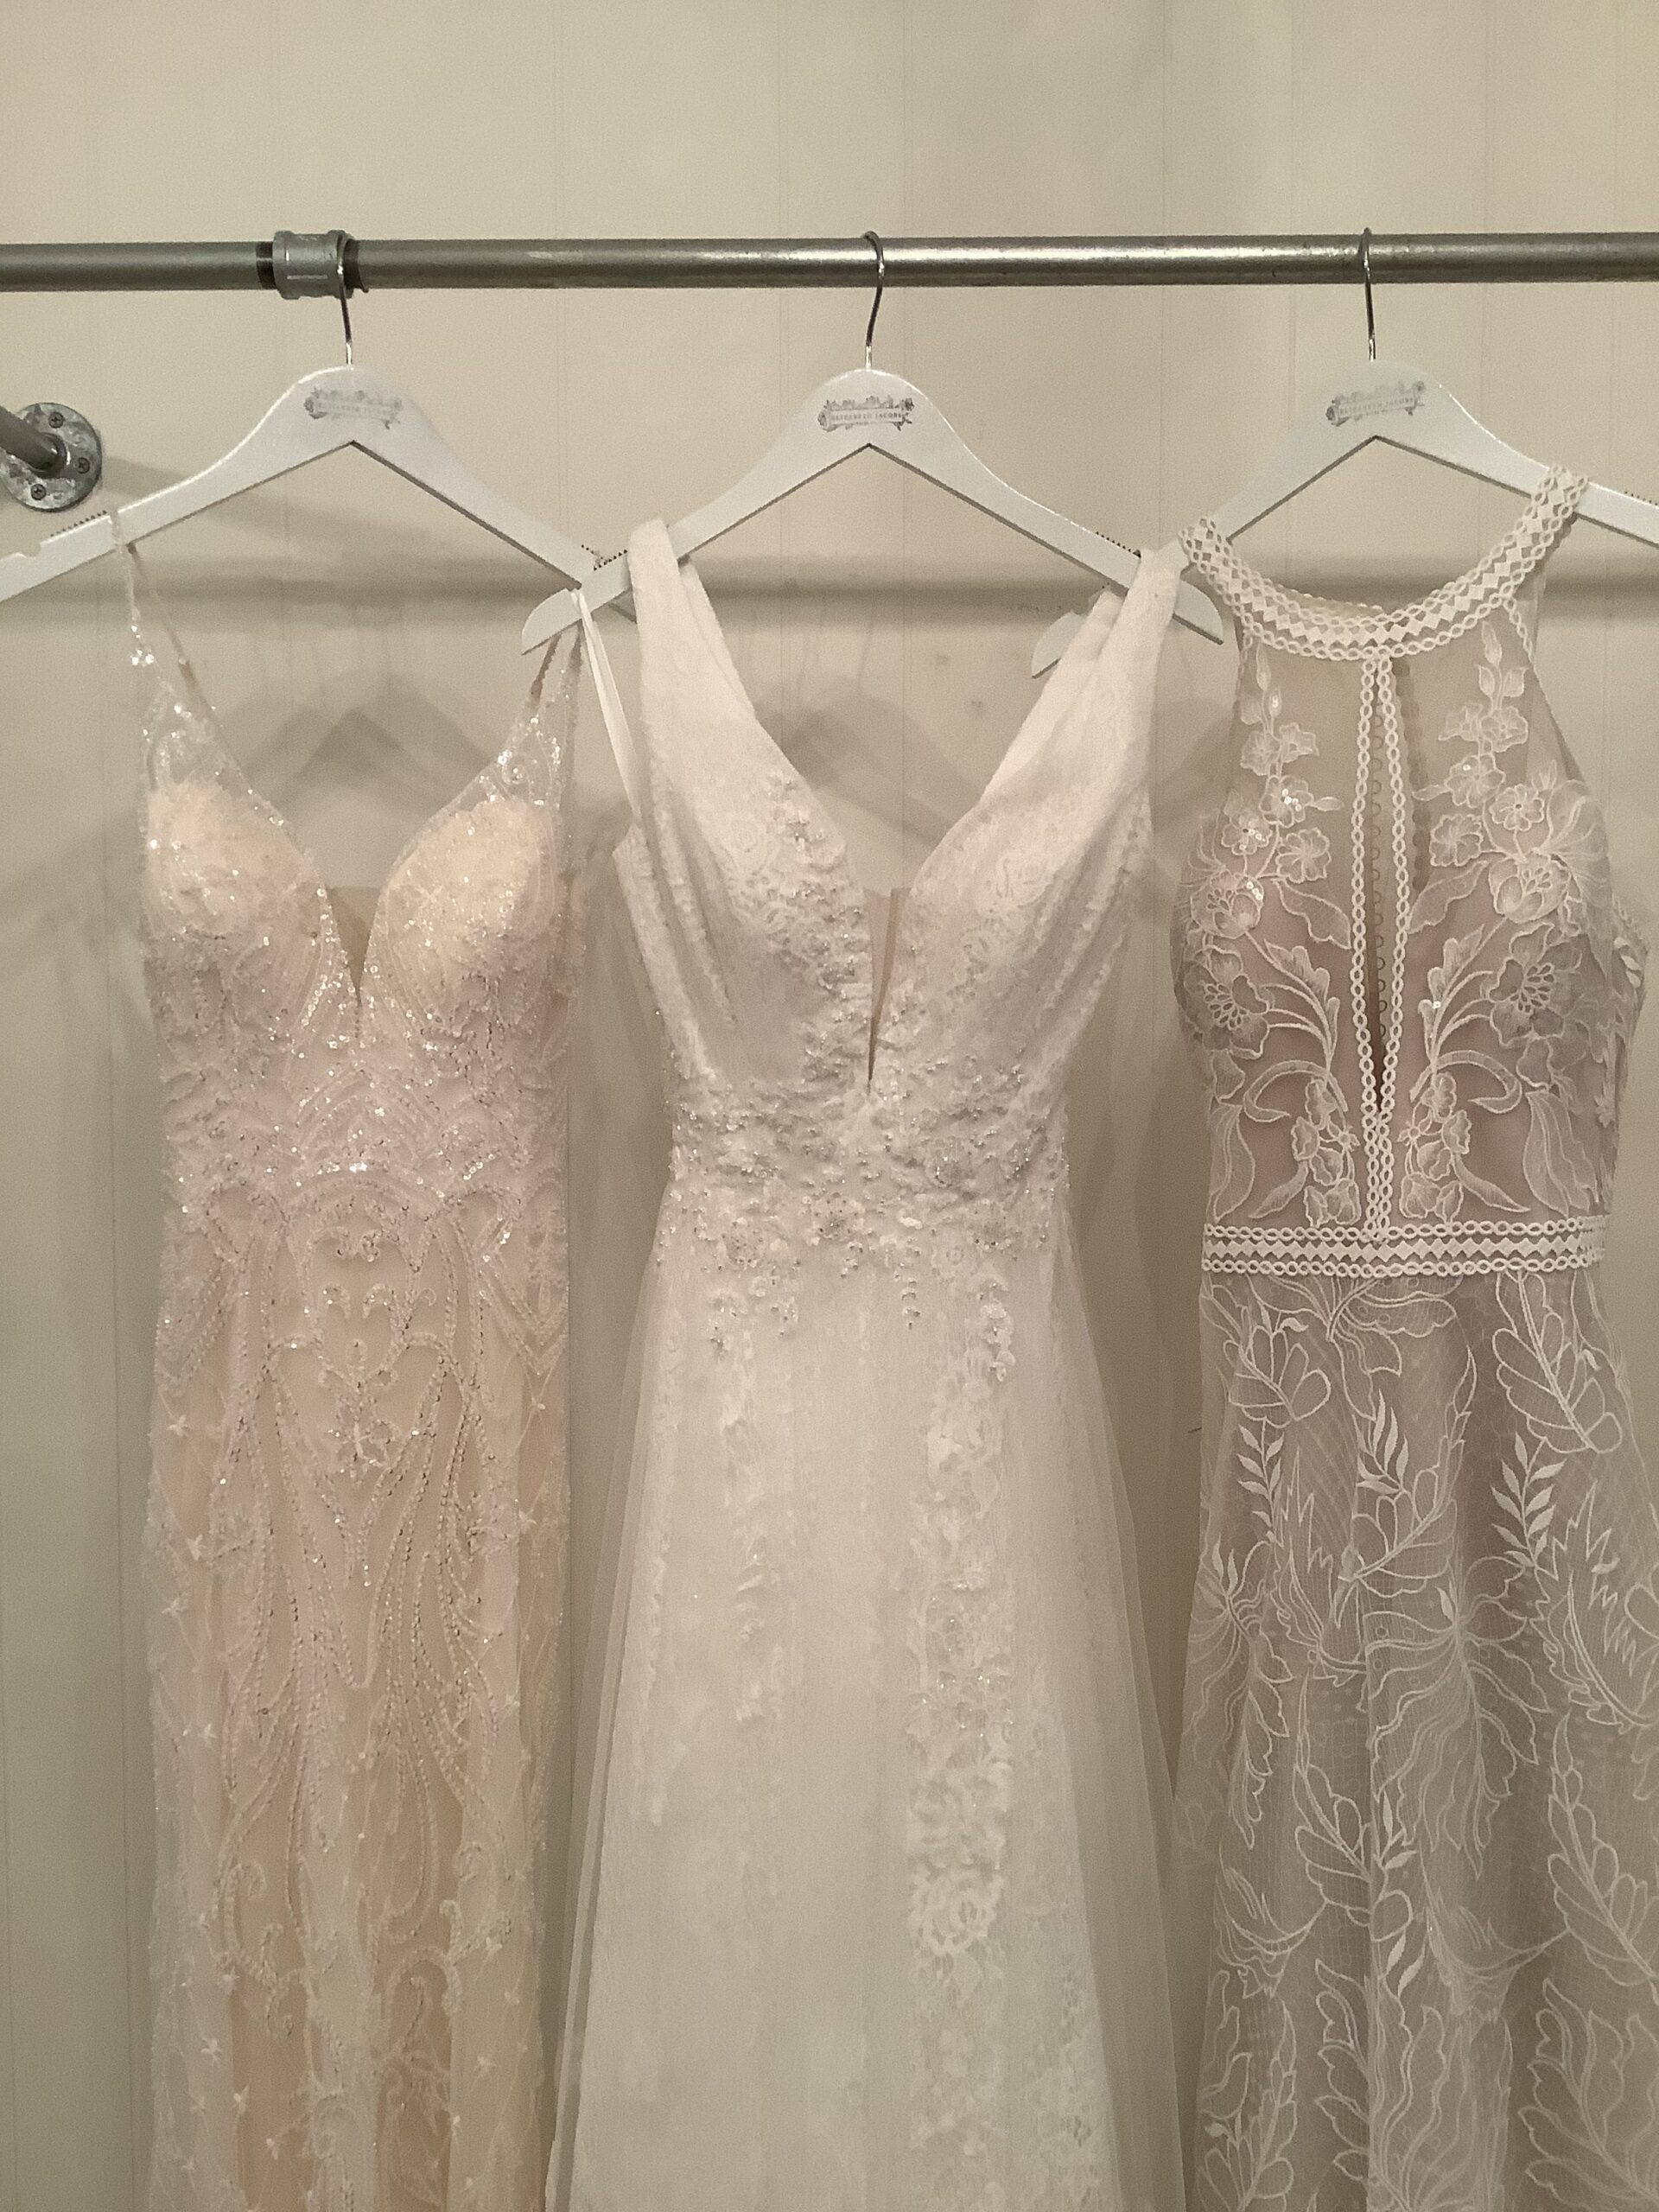 Classic wedding dress, boho wedding dress, plus size wedding dress in west bend Wisconsin bridal boutique